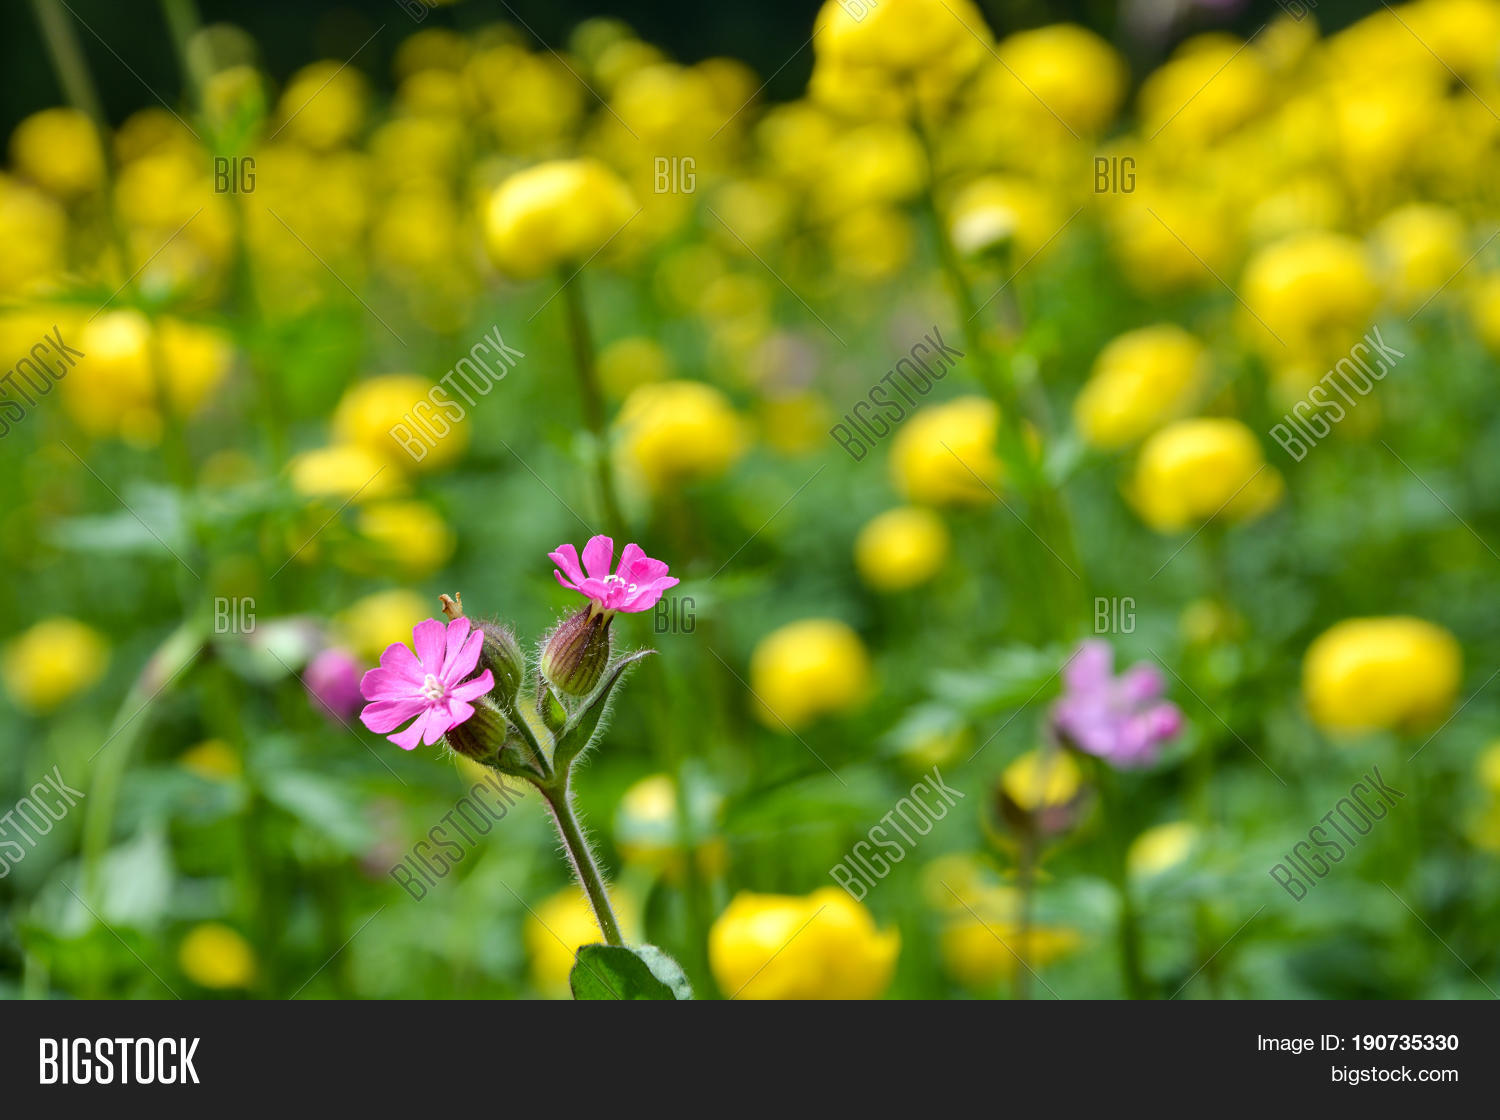 Pink Alpine Flowers Image Photo Free Trial Bigstock